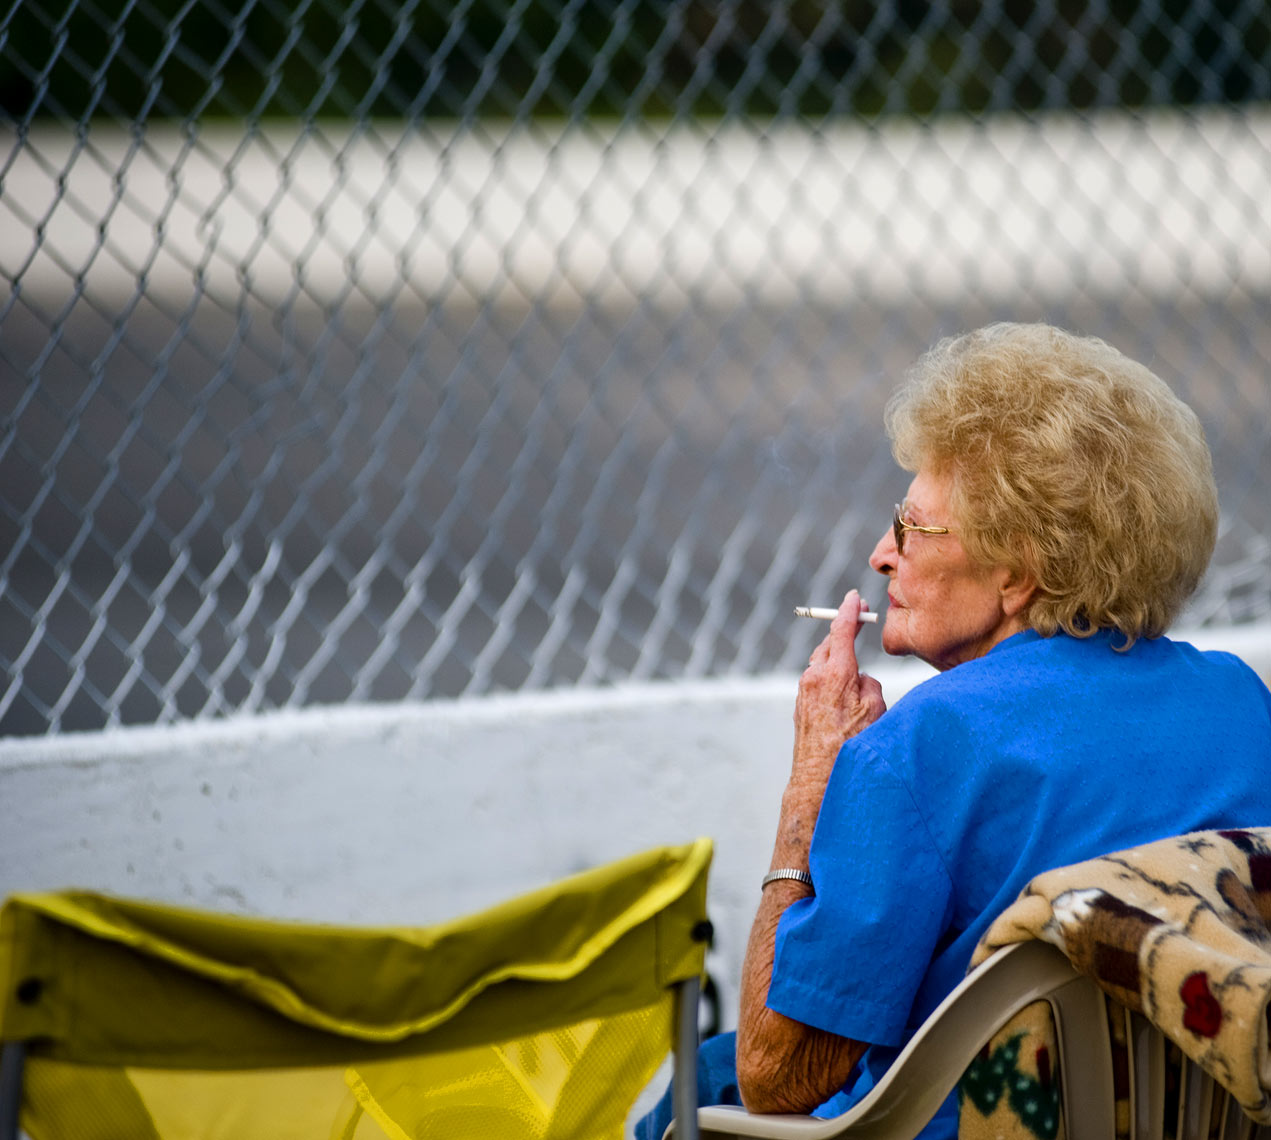 Women smokes and watches nascar at Wake County Speedway